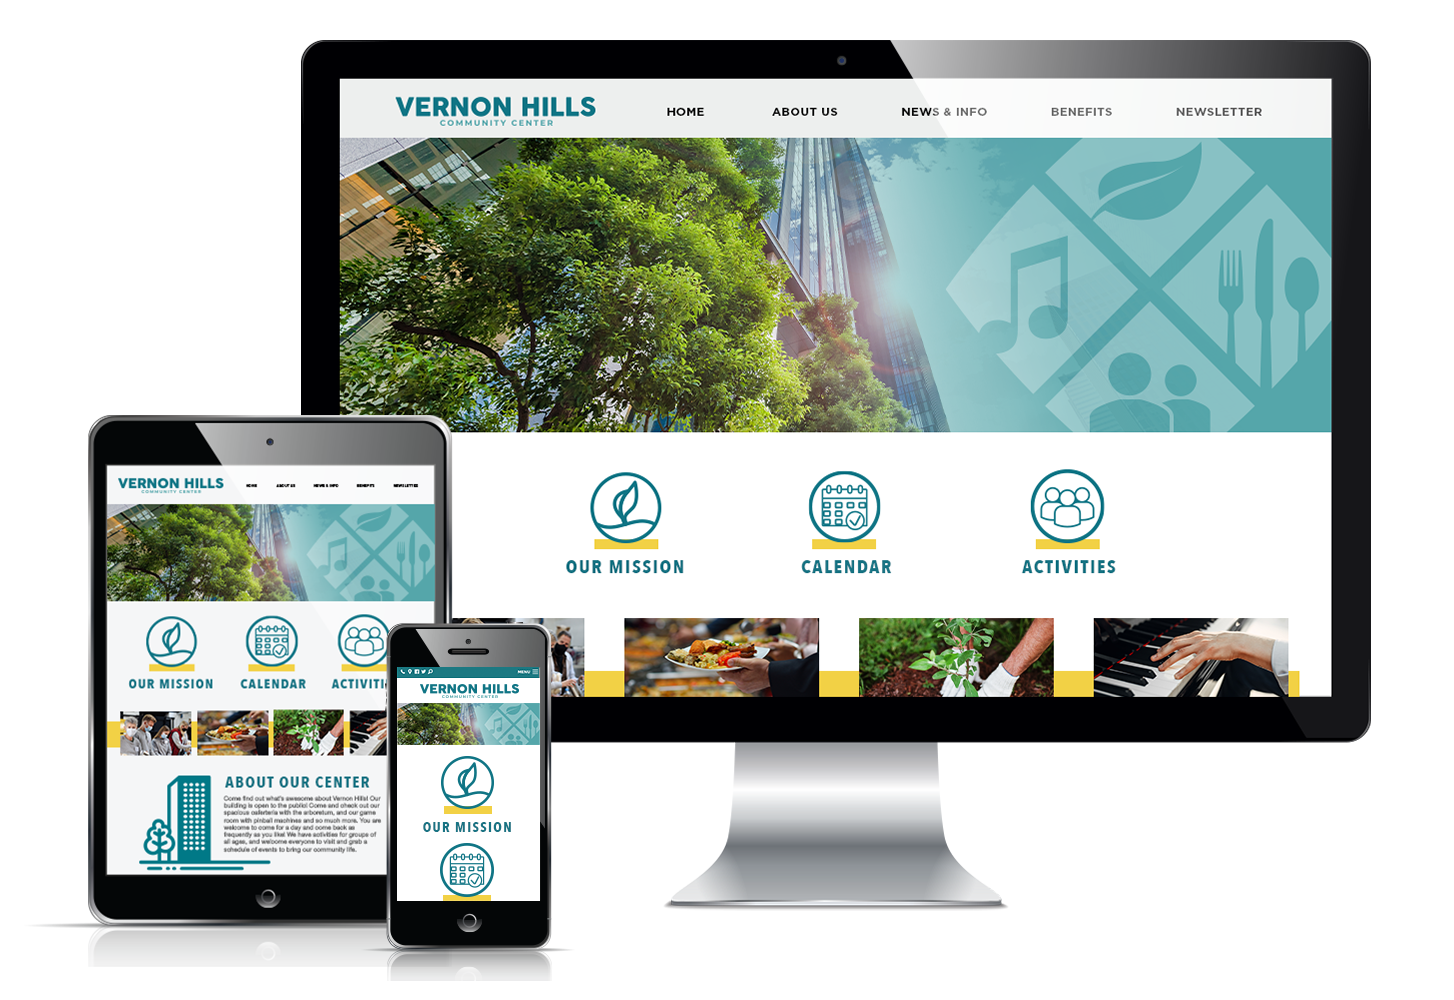 Responsive website display for Vernon Hills